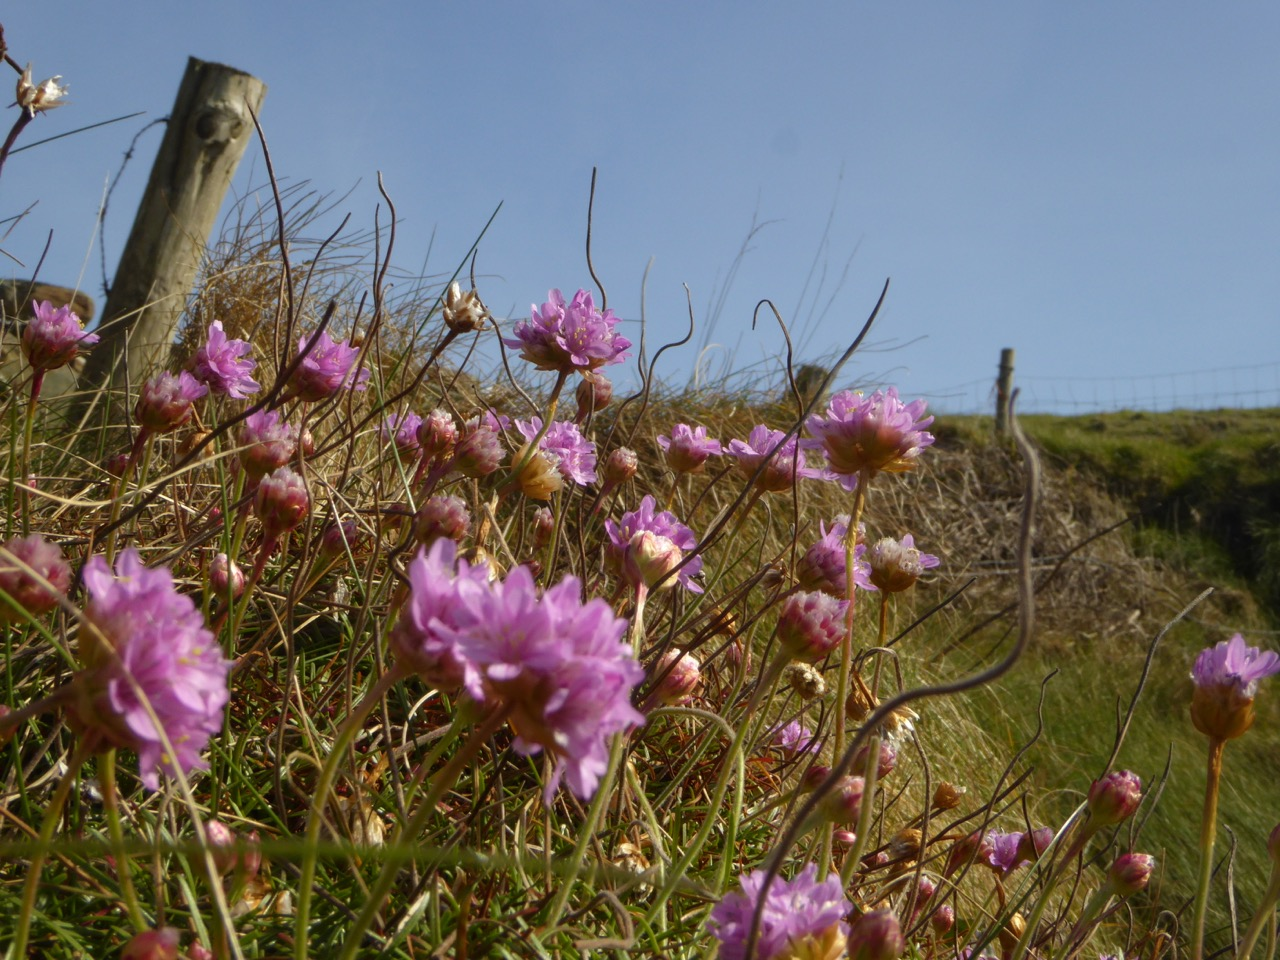 Sea pinks depth of field roaringwater journal sea pinks depth of field mightylinksfo